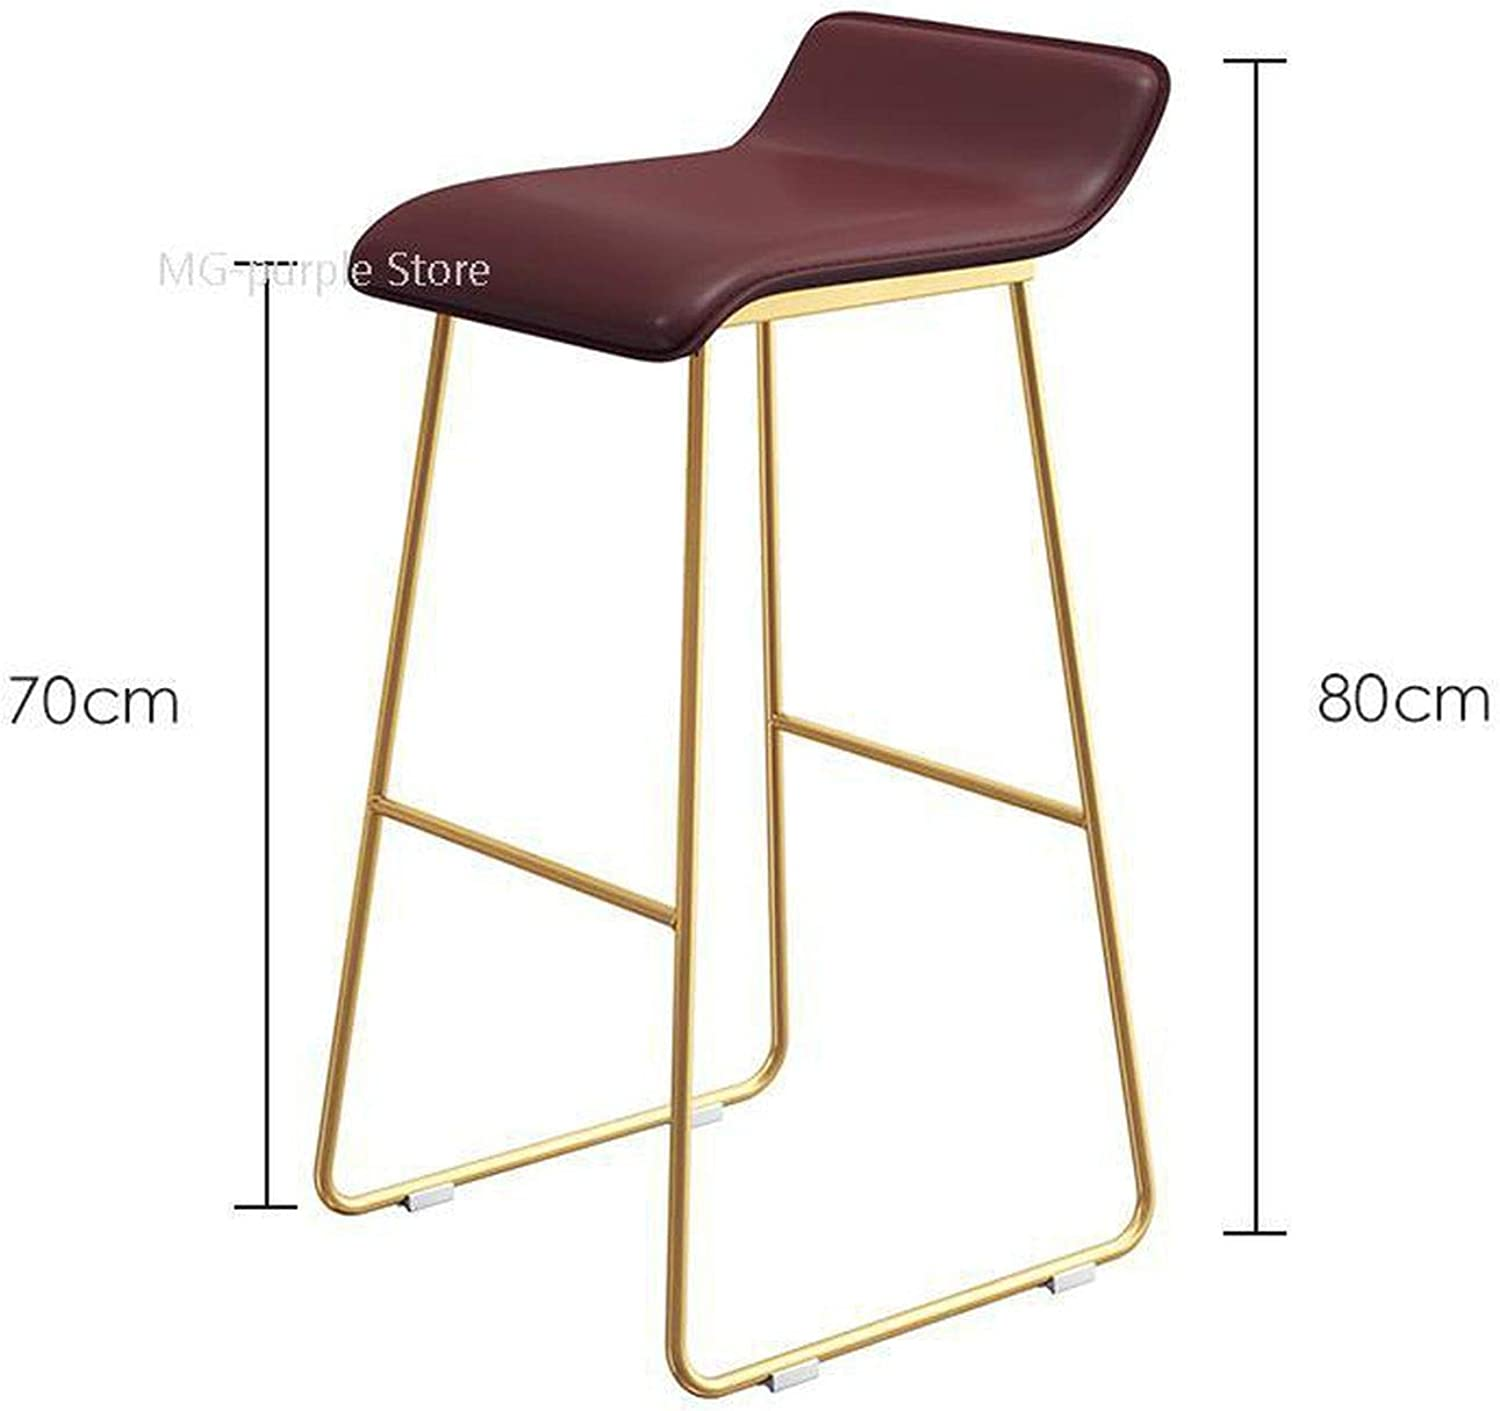 Bar Chair Coffee Milk Tea Lounge Chair Simple Bar Stool Designer Wrought Iron gold High Chair Padded Bar Chair,Style 11